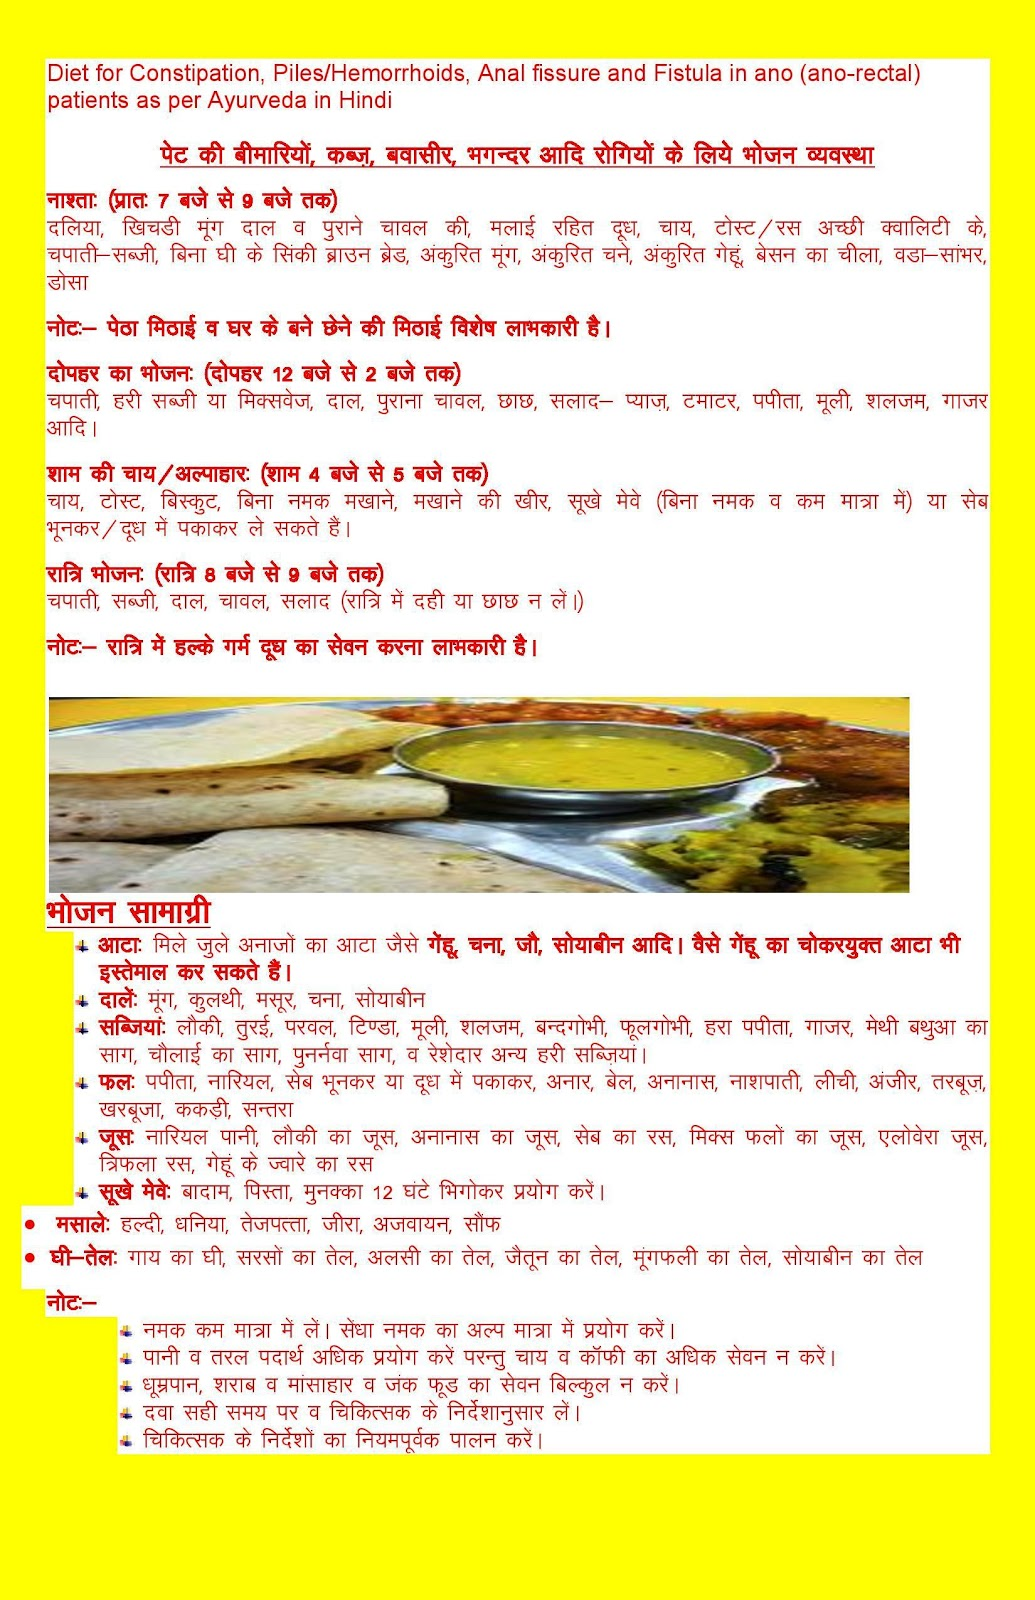 dr chauhan s blog diet for constipation piles